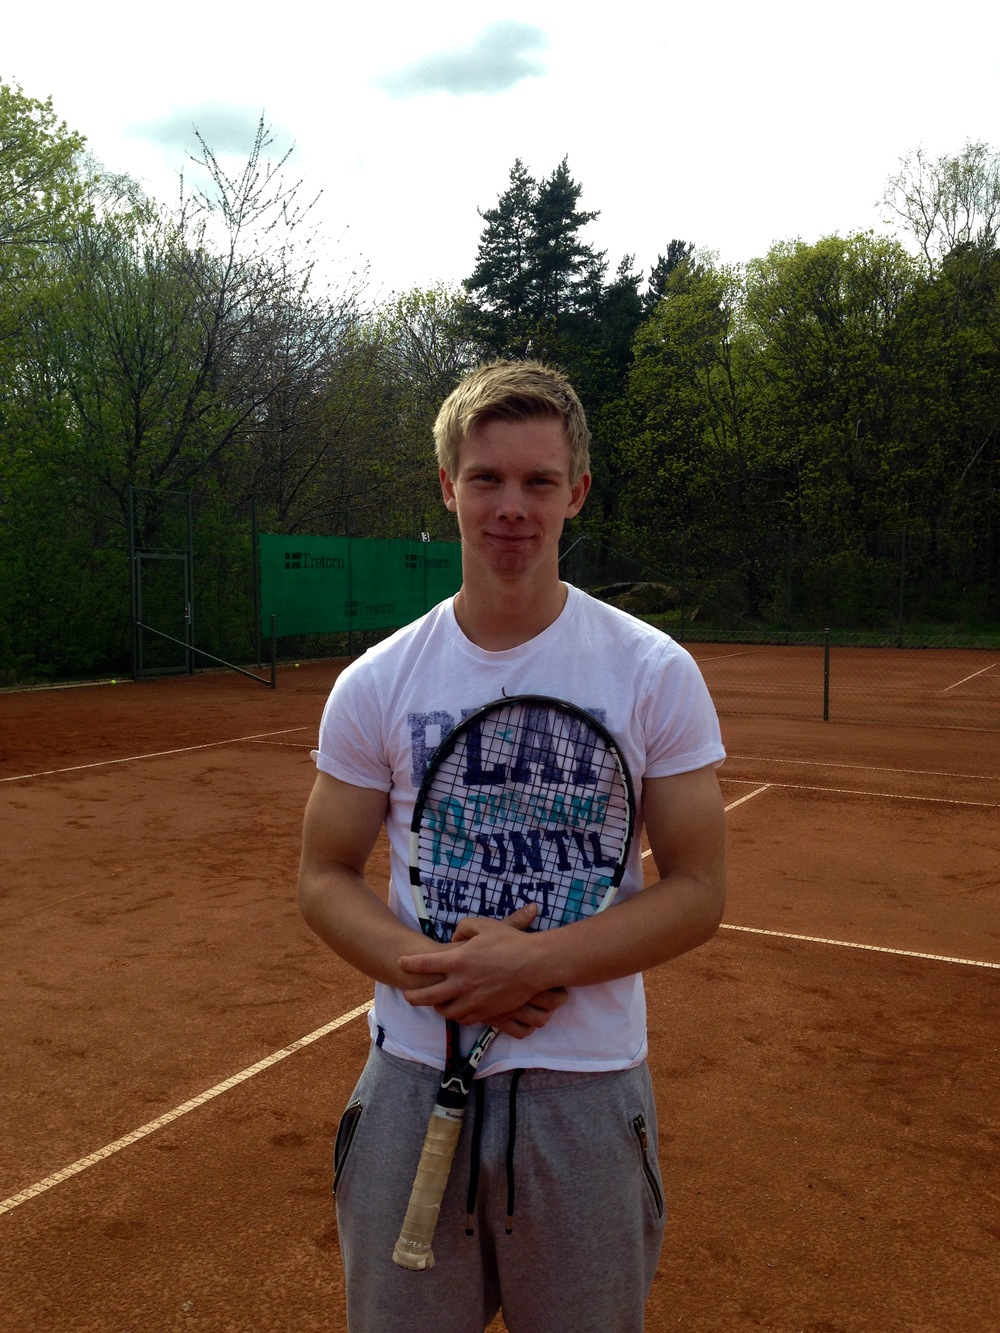 Axel Oljons    (Top 10 in Sweden, National Doubles Champion)